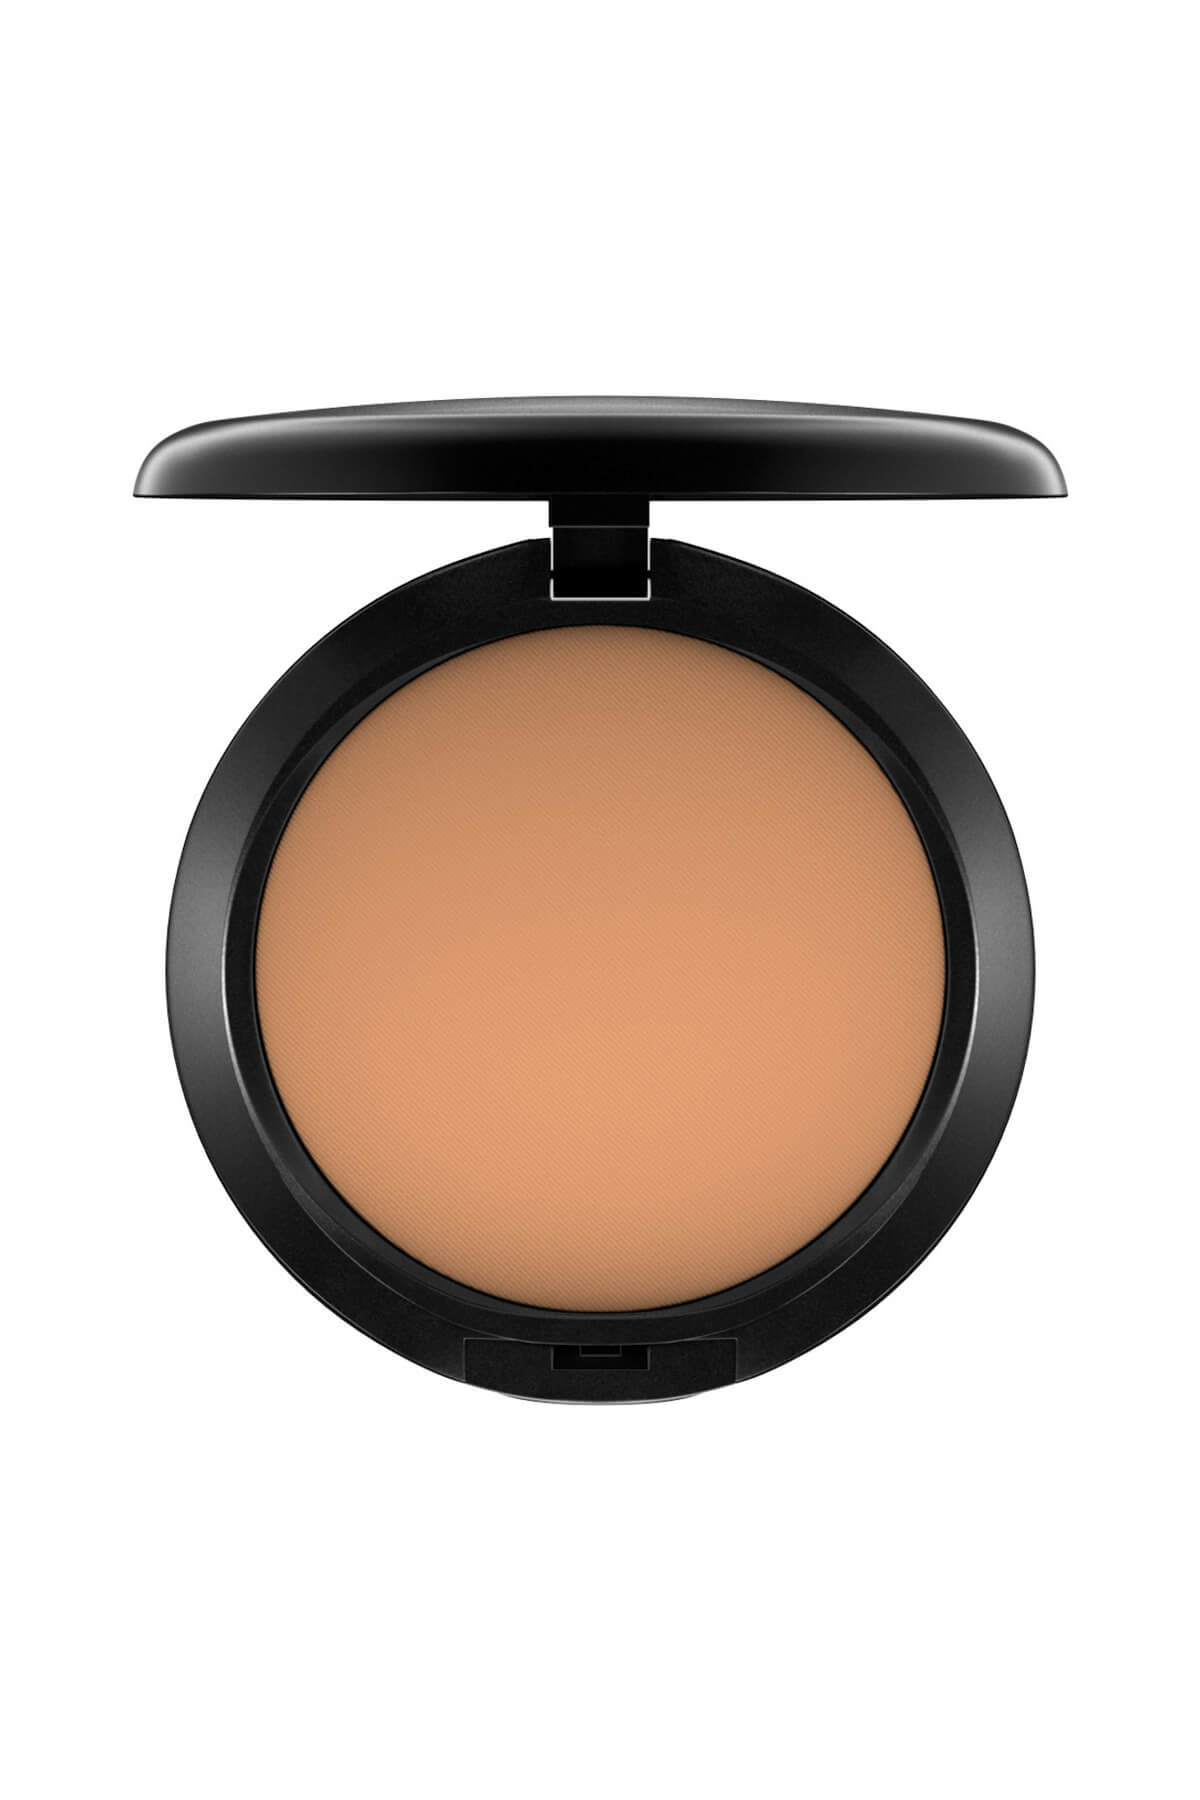 MAC - Studio Fix Powder Plus Foundation, NW 29